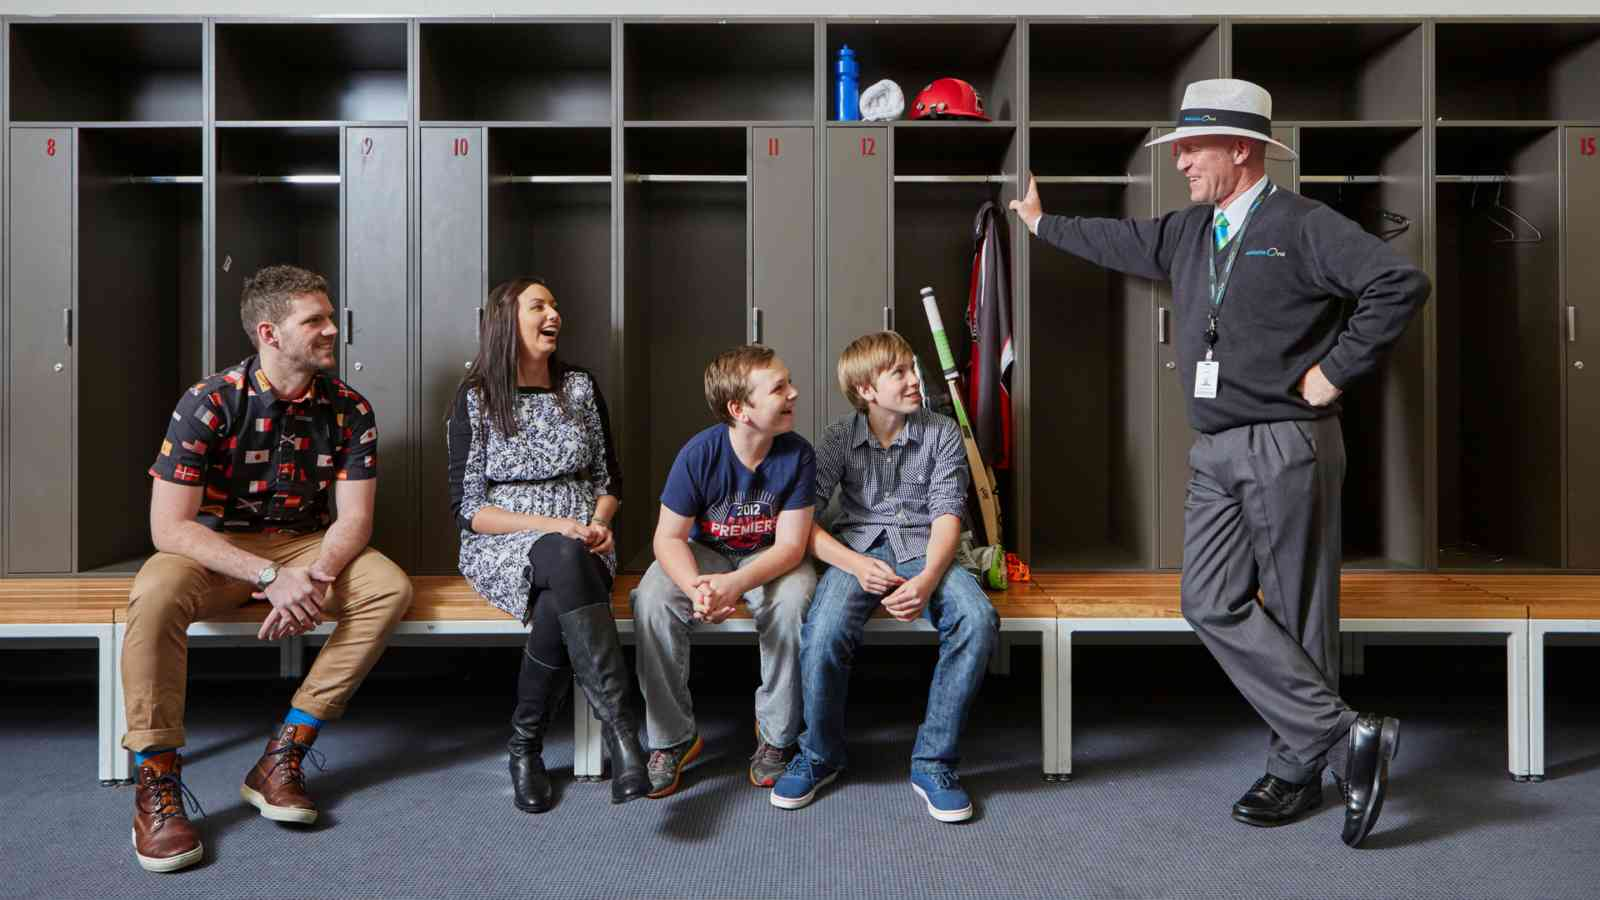 Adelaide Oval Locker Rooms